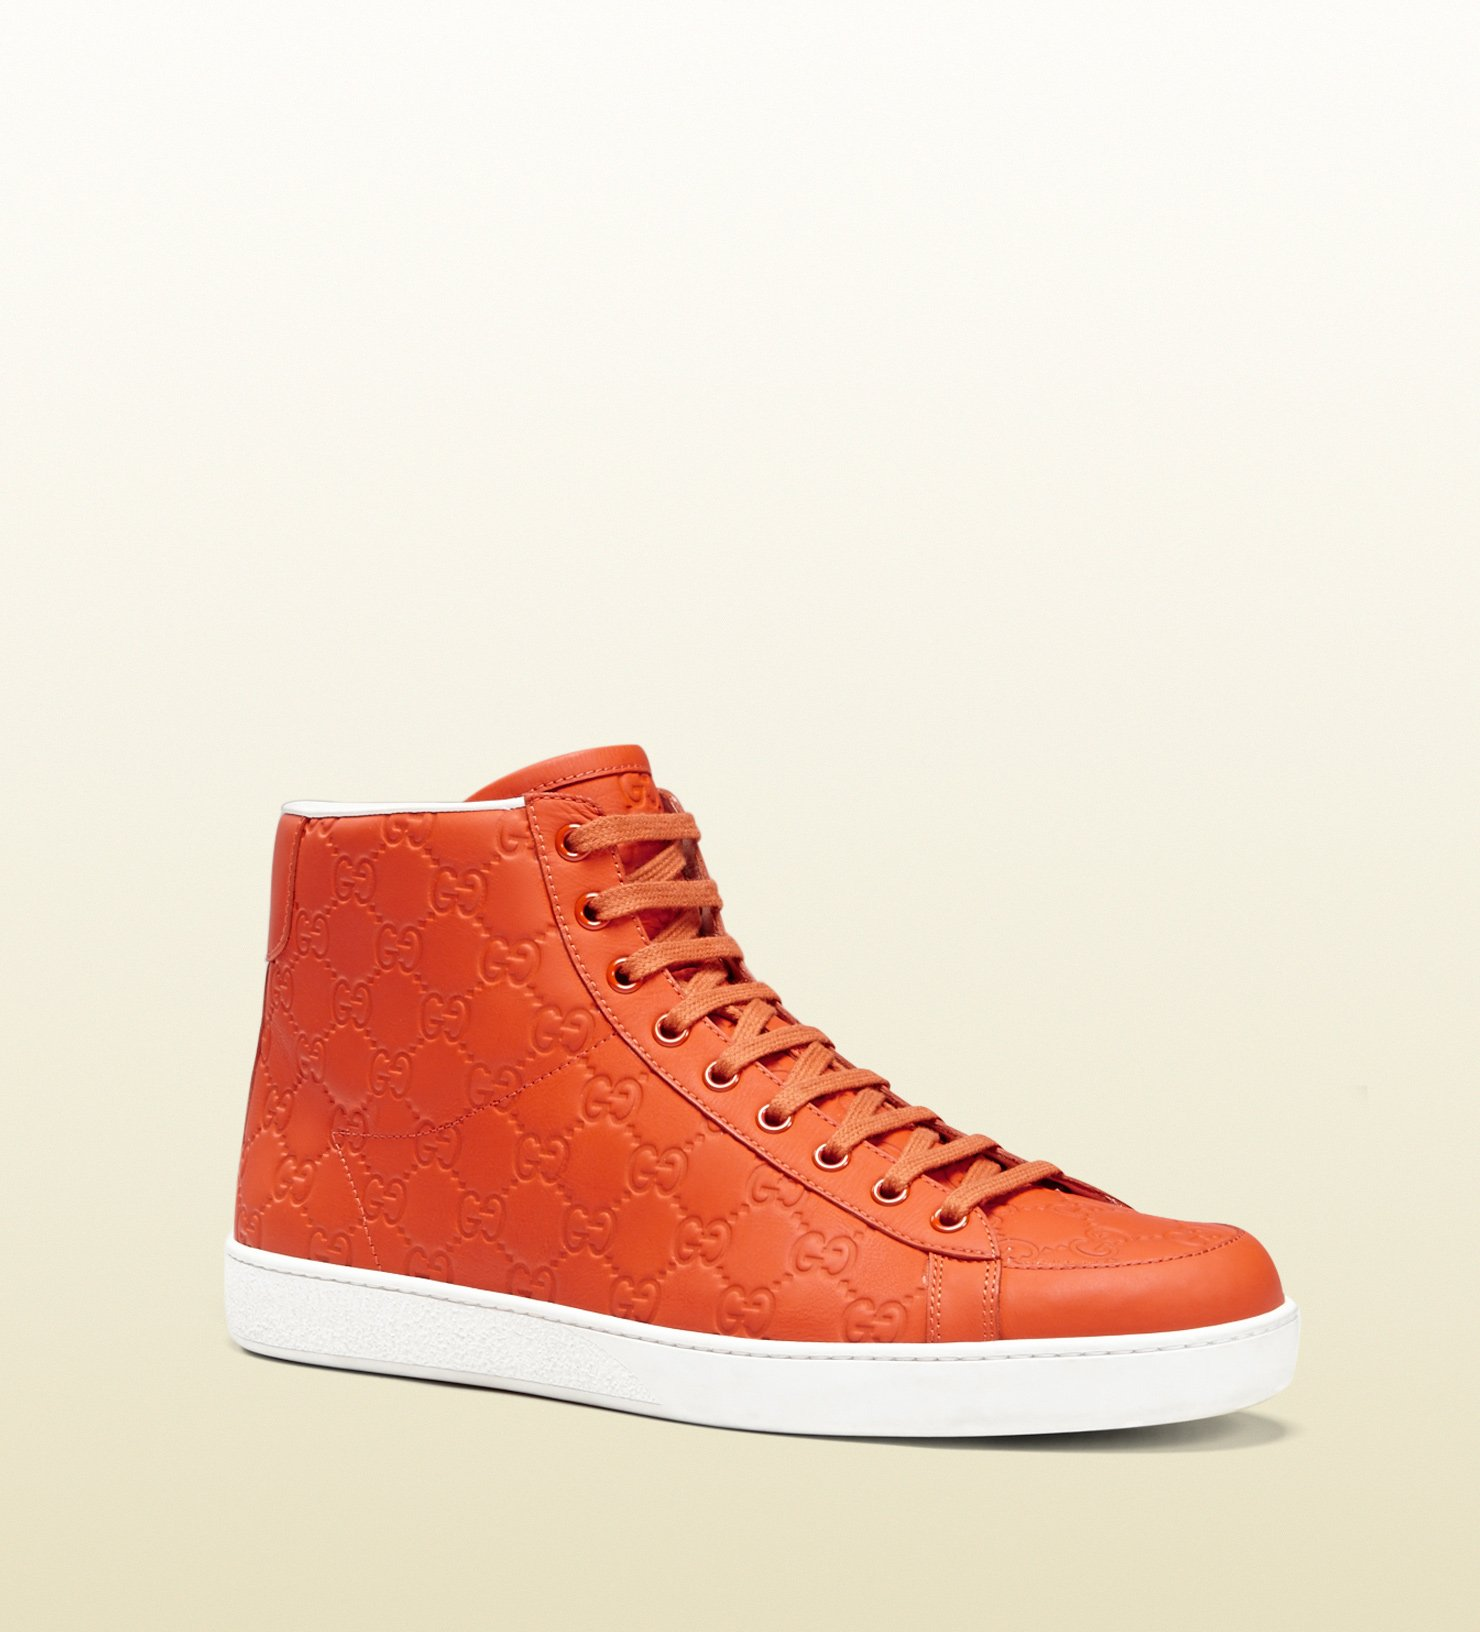 Mens Gucci Shoes High Tops